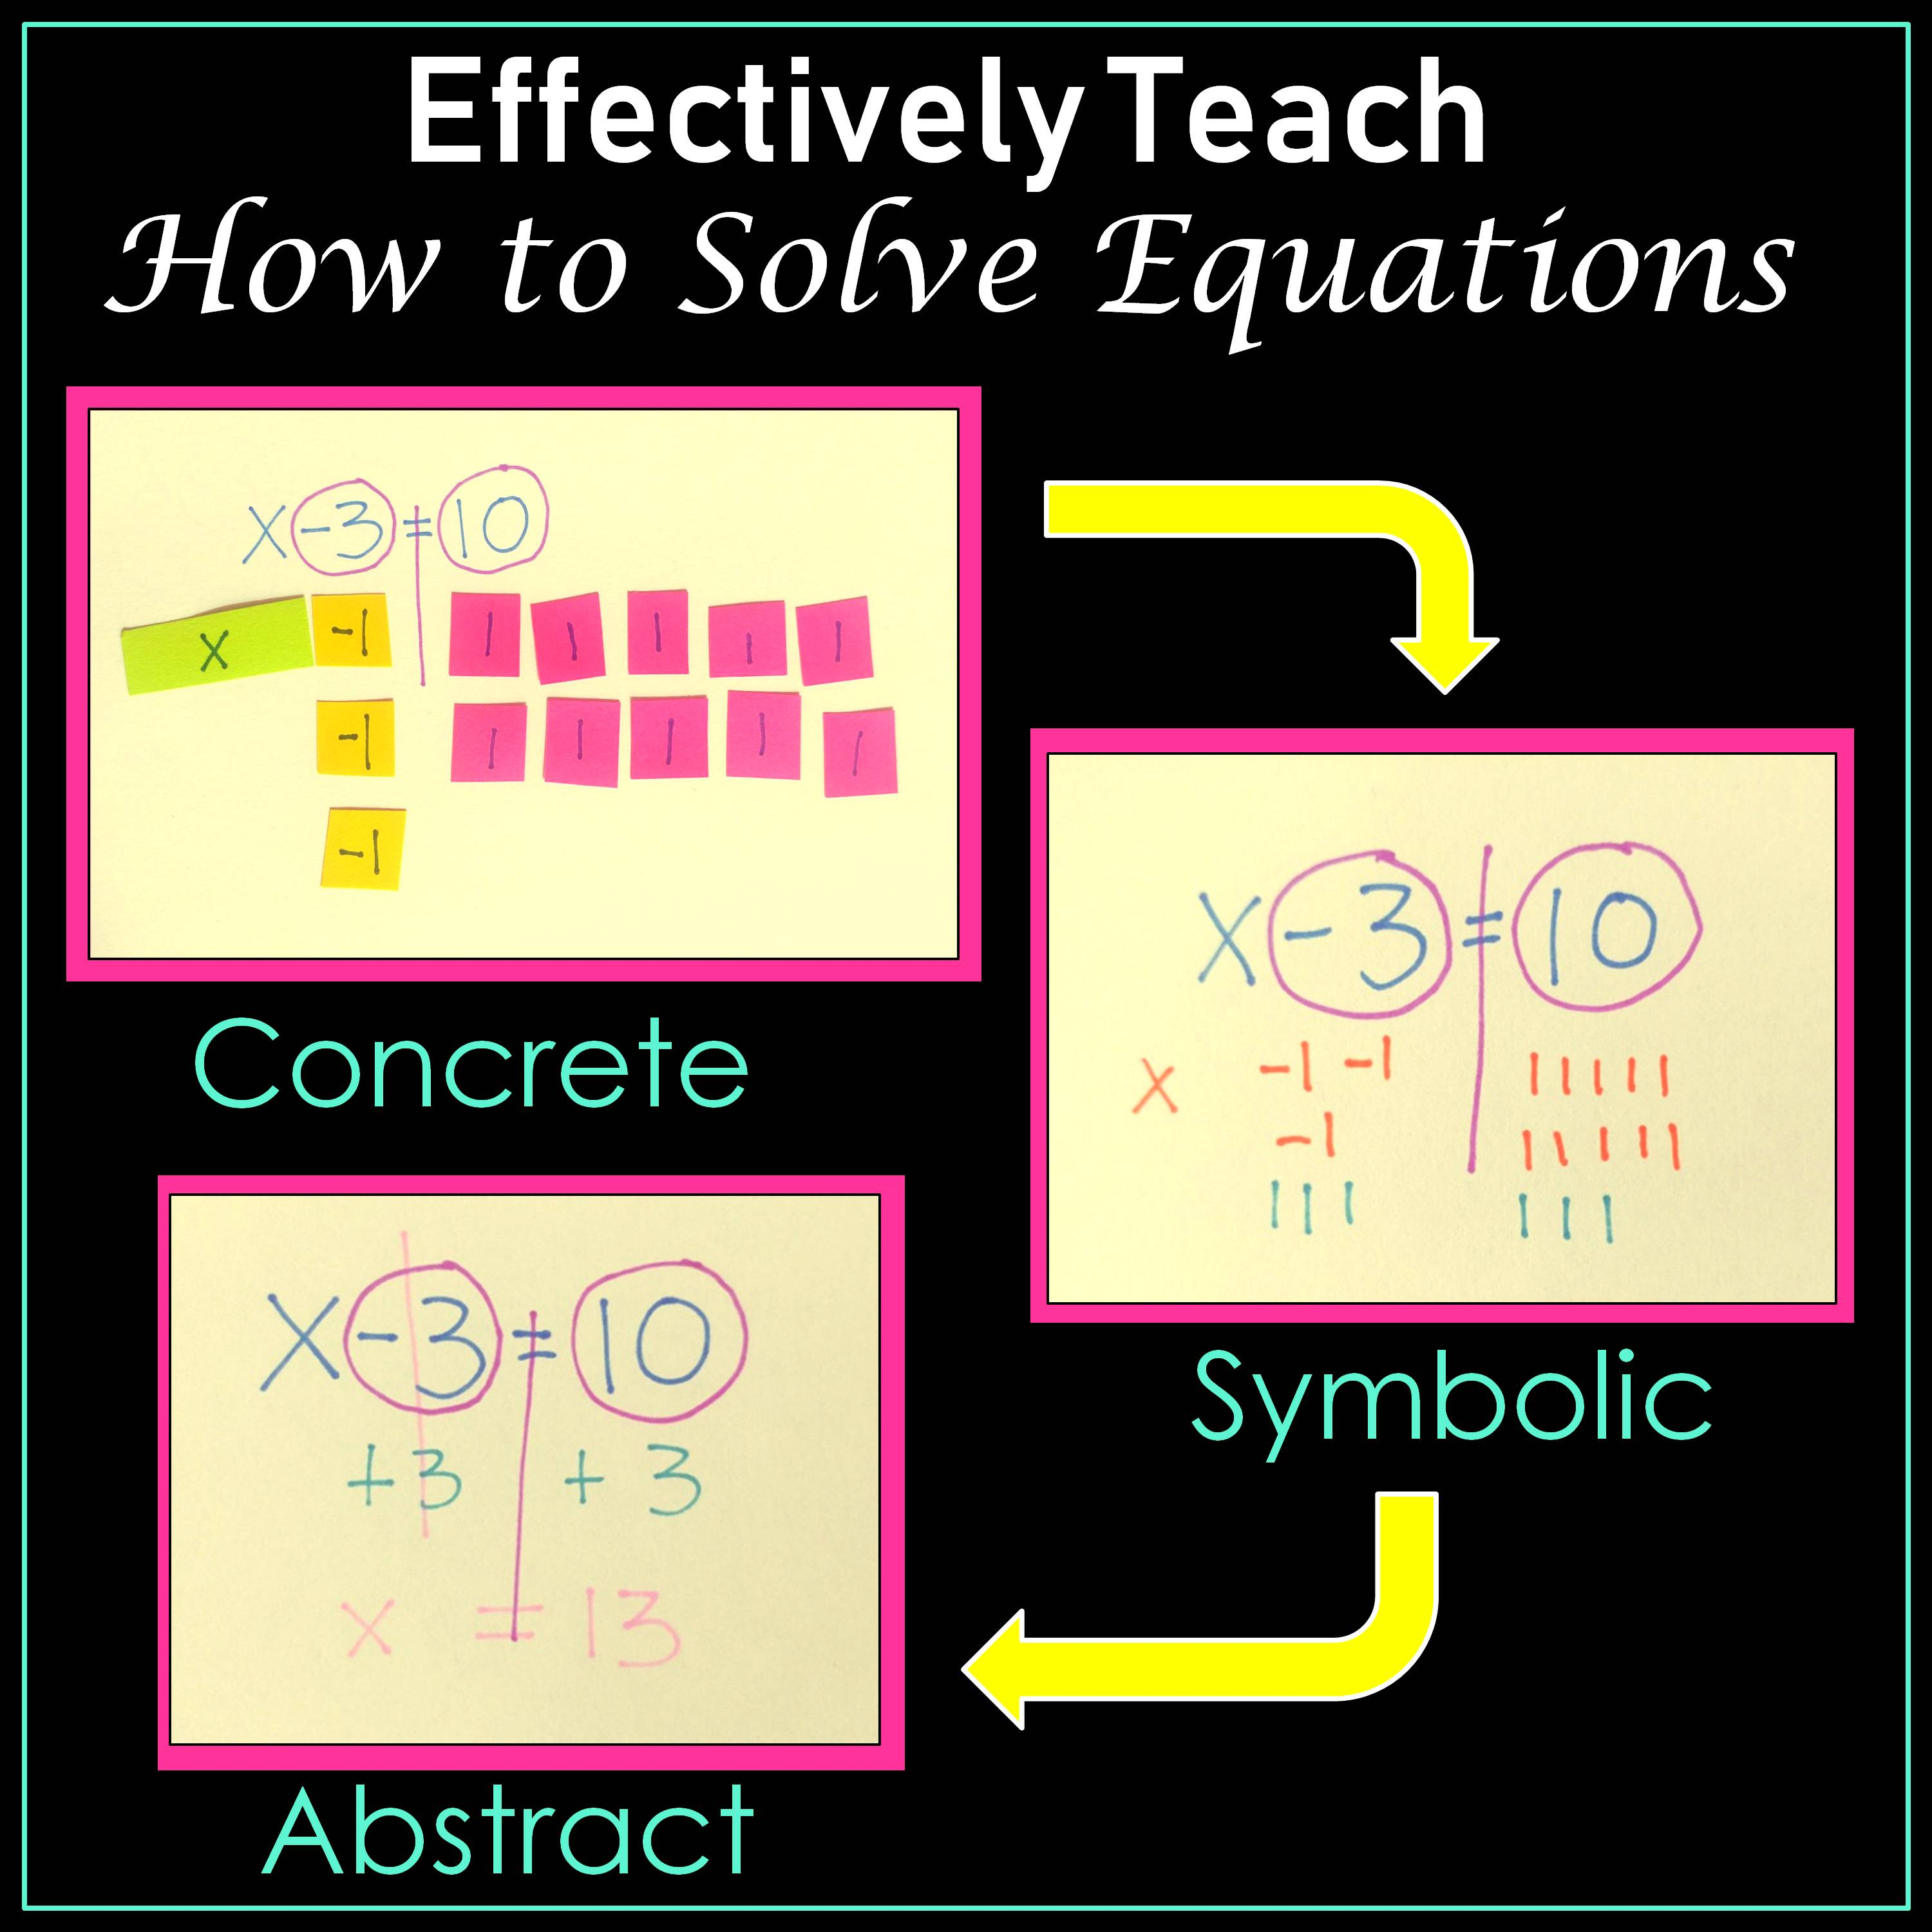 Effectively Teach How to Solve Equations